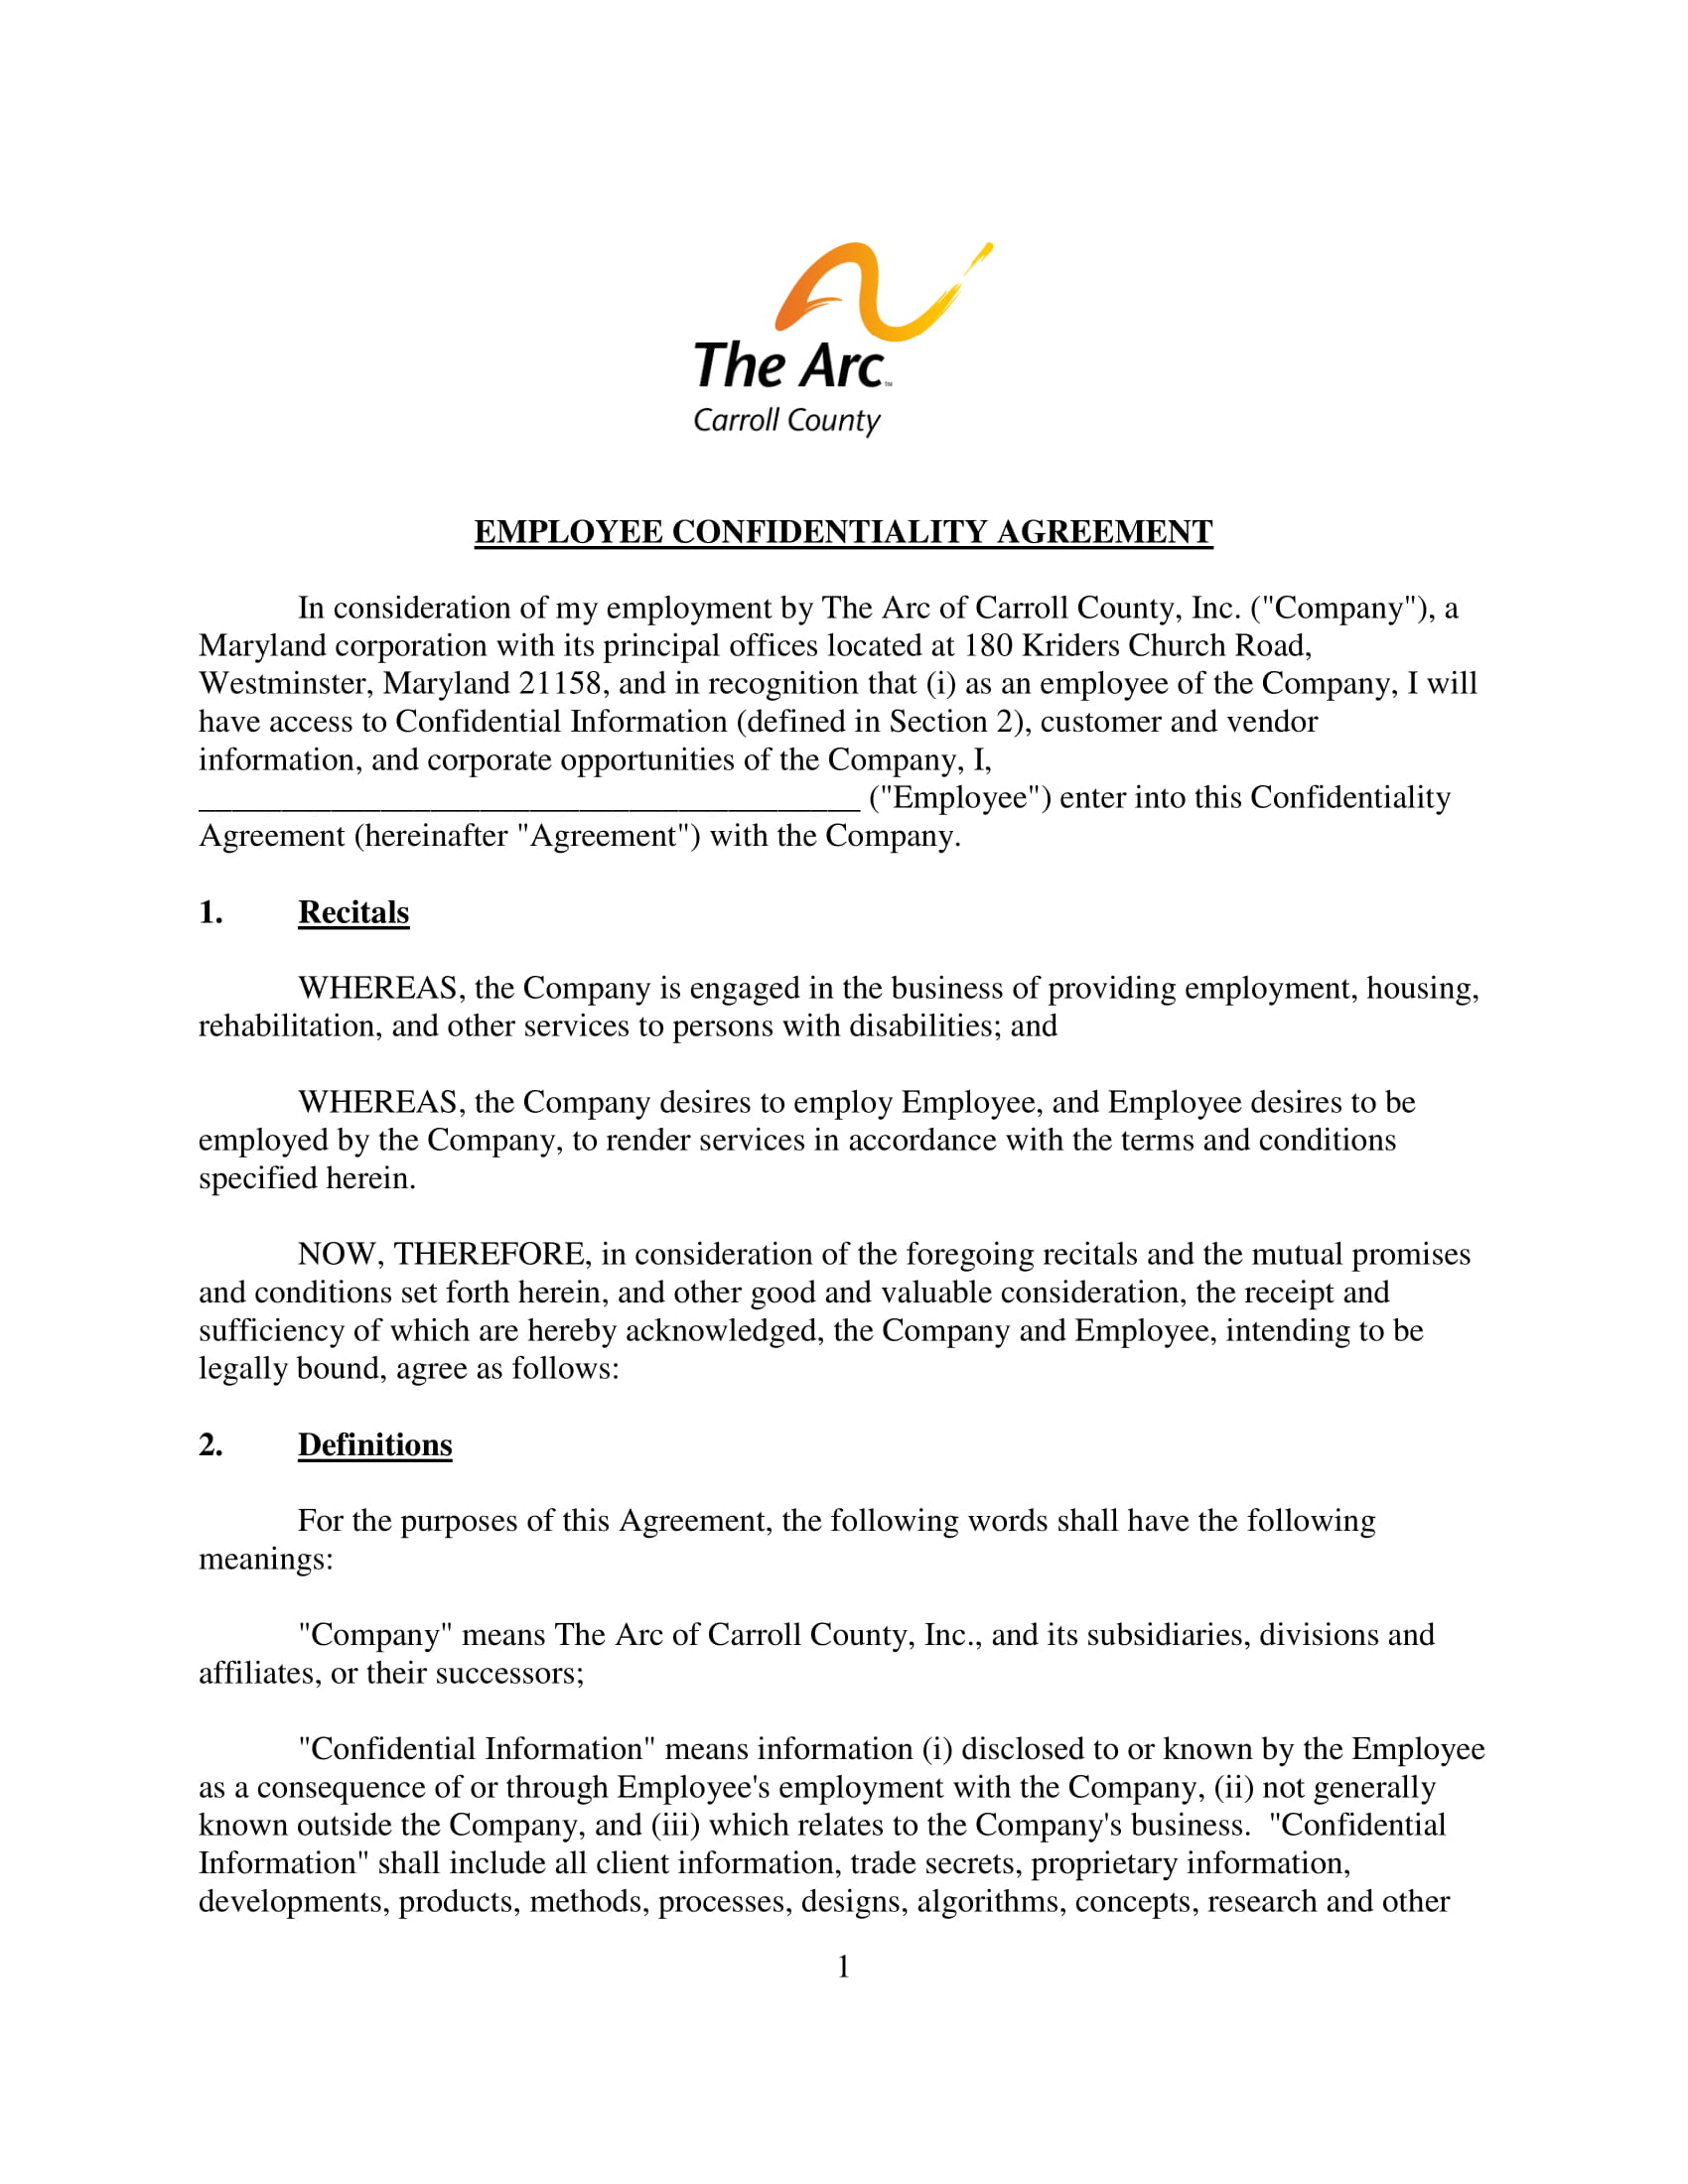 employee confidentiality agreement example 1